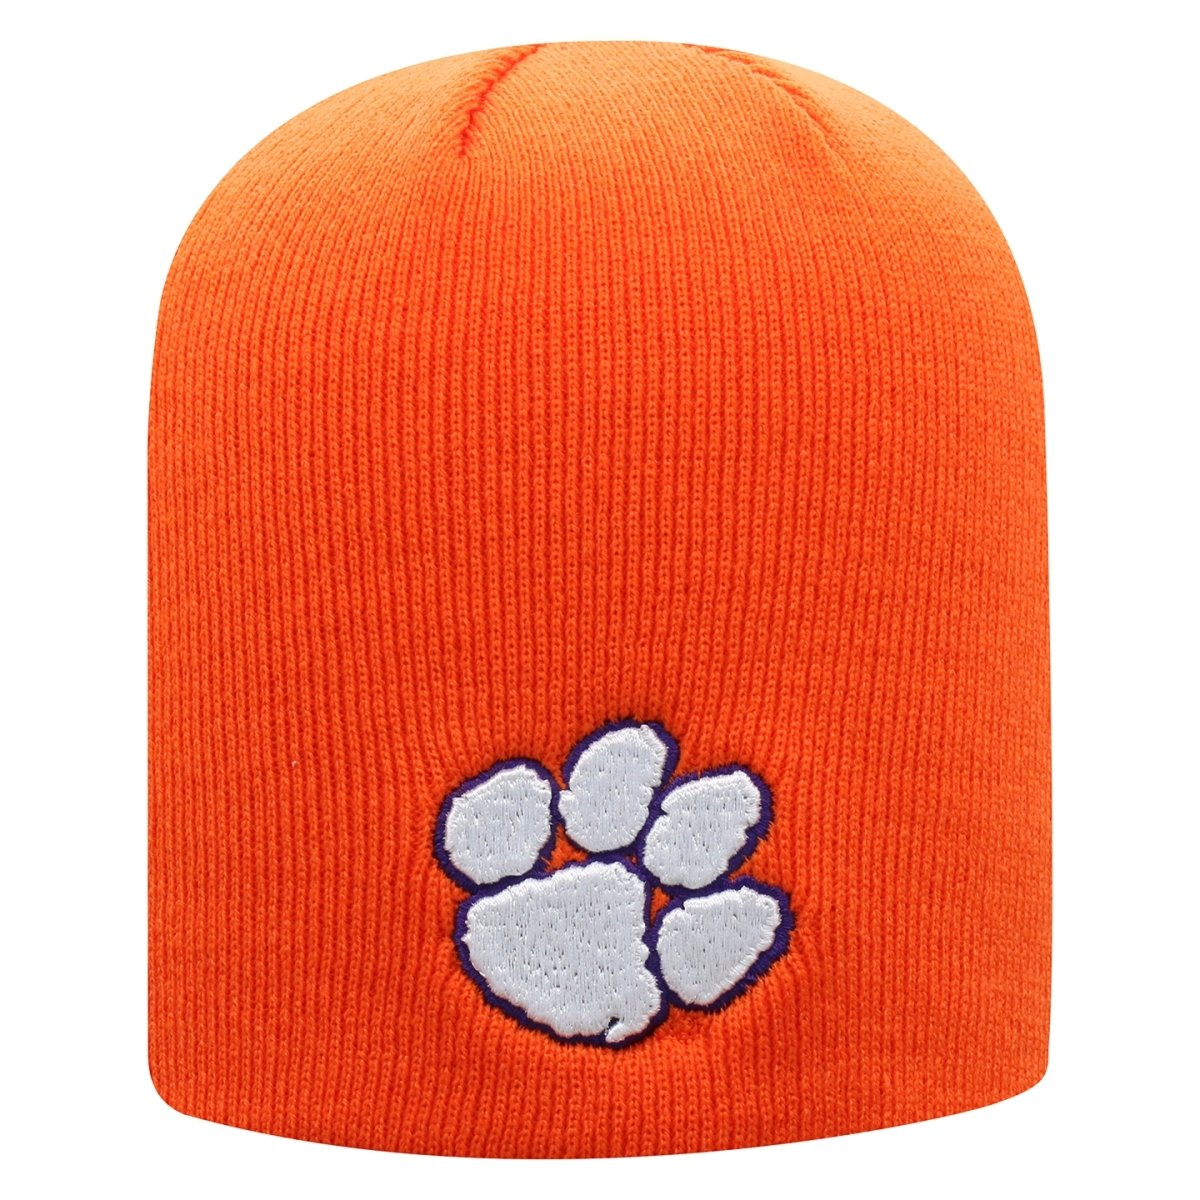 Clemson Tigers Ez-Doz-It Beanie With White Paw - Mr. Knickerbocker